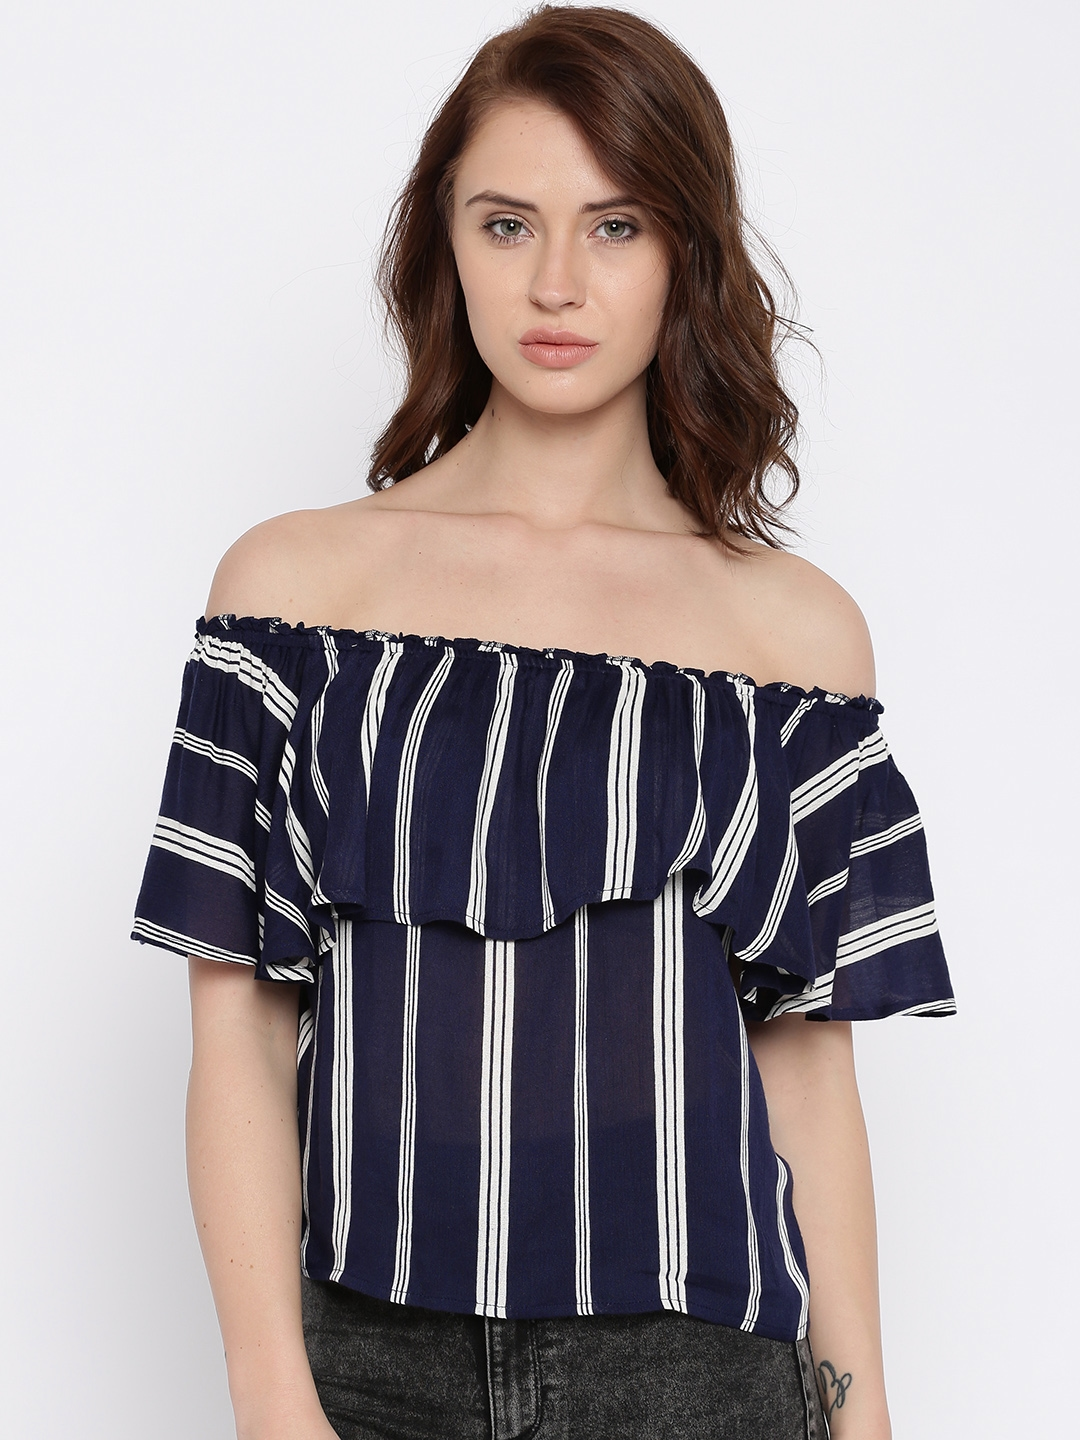 4565ba6e9e538 Buy ONLY Women Navy   White Striped Off Shoulder Top - Tops for ...